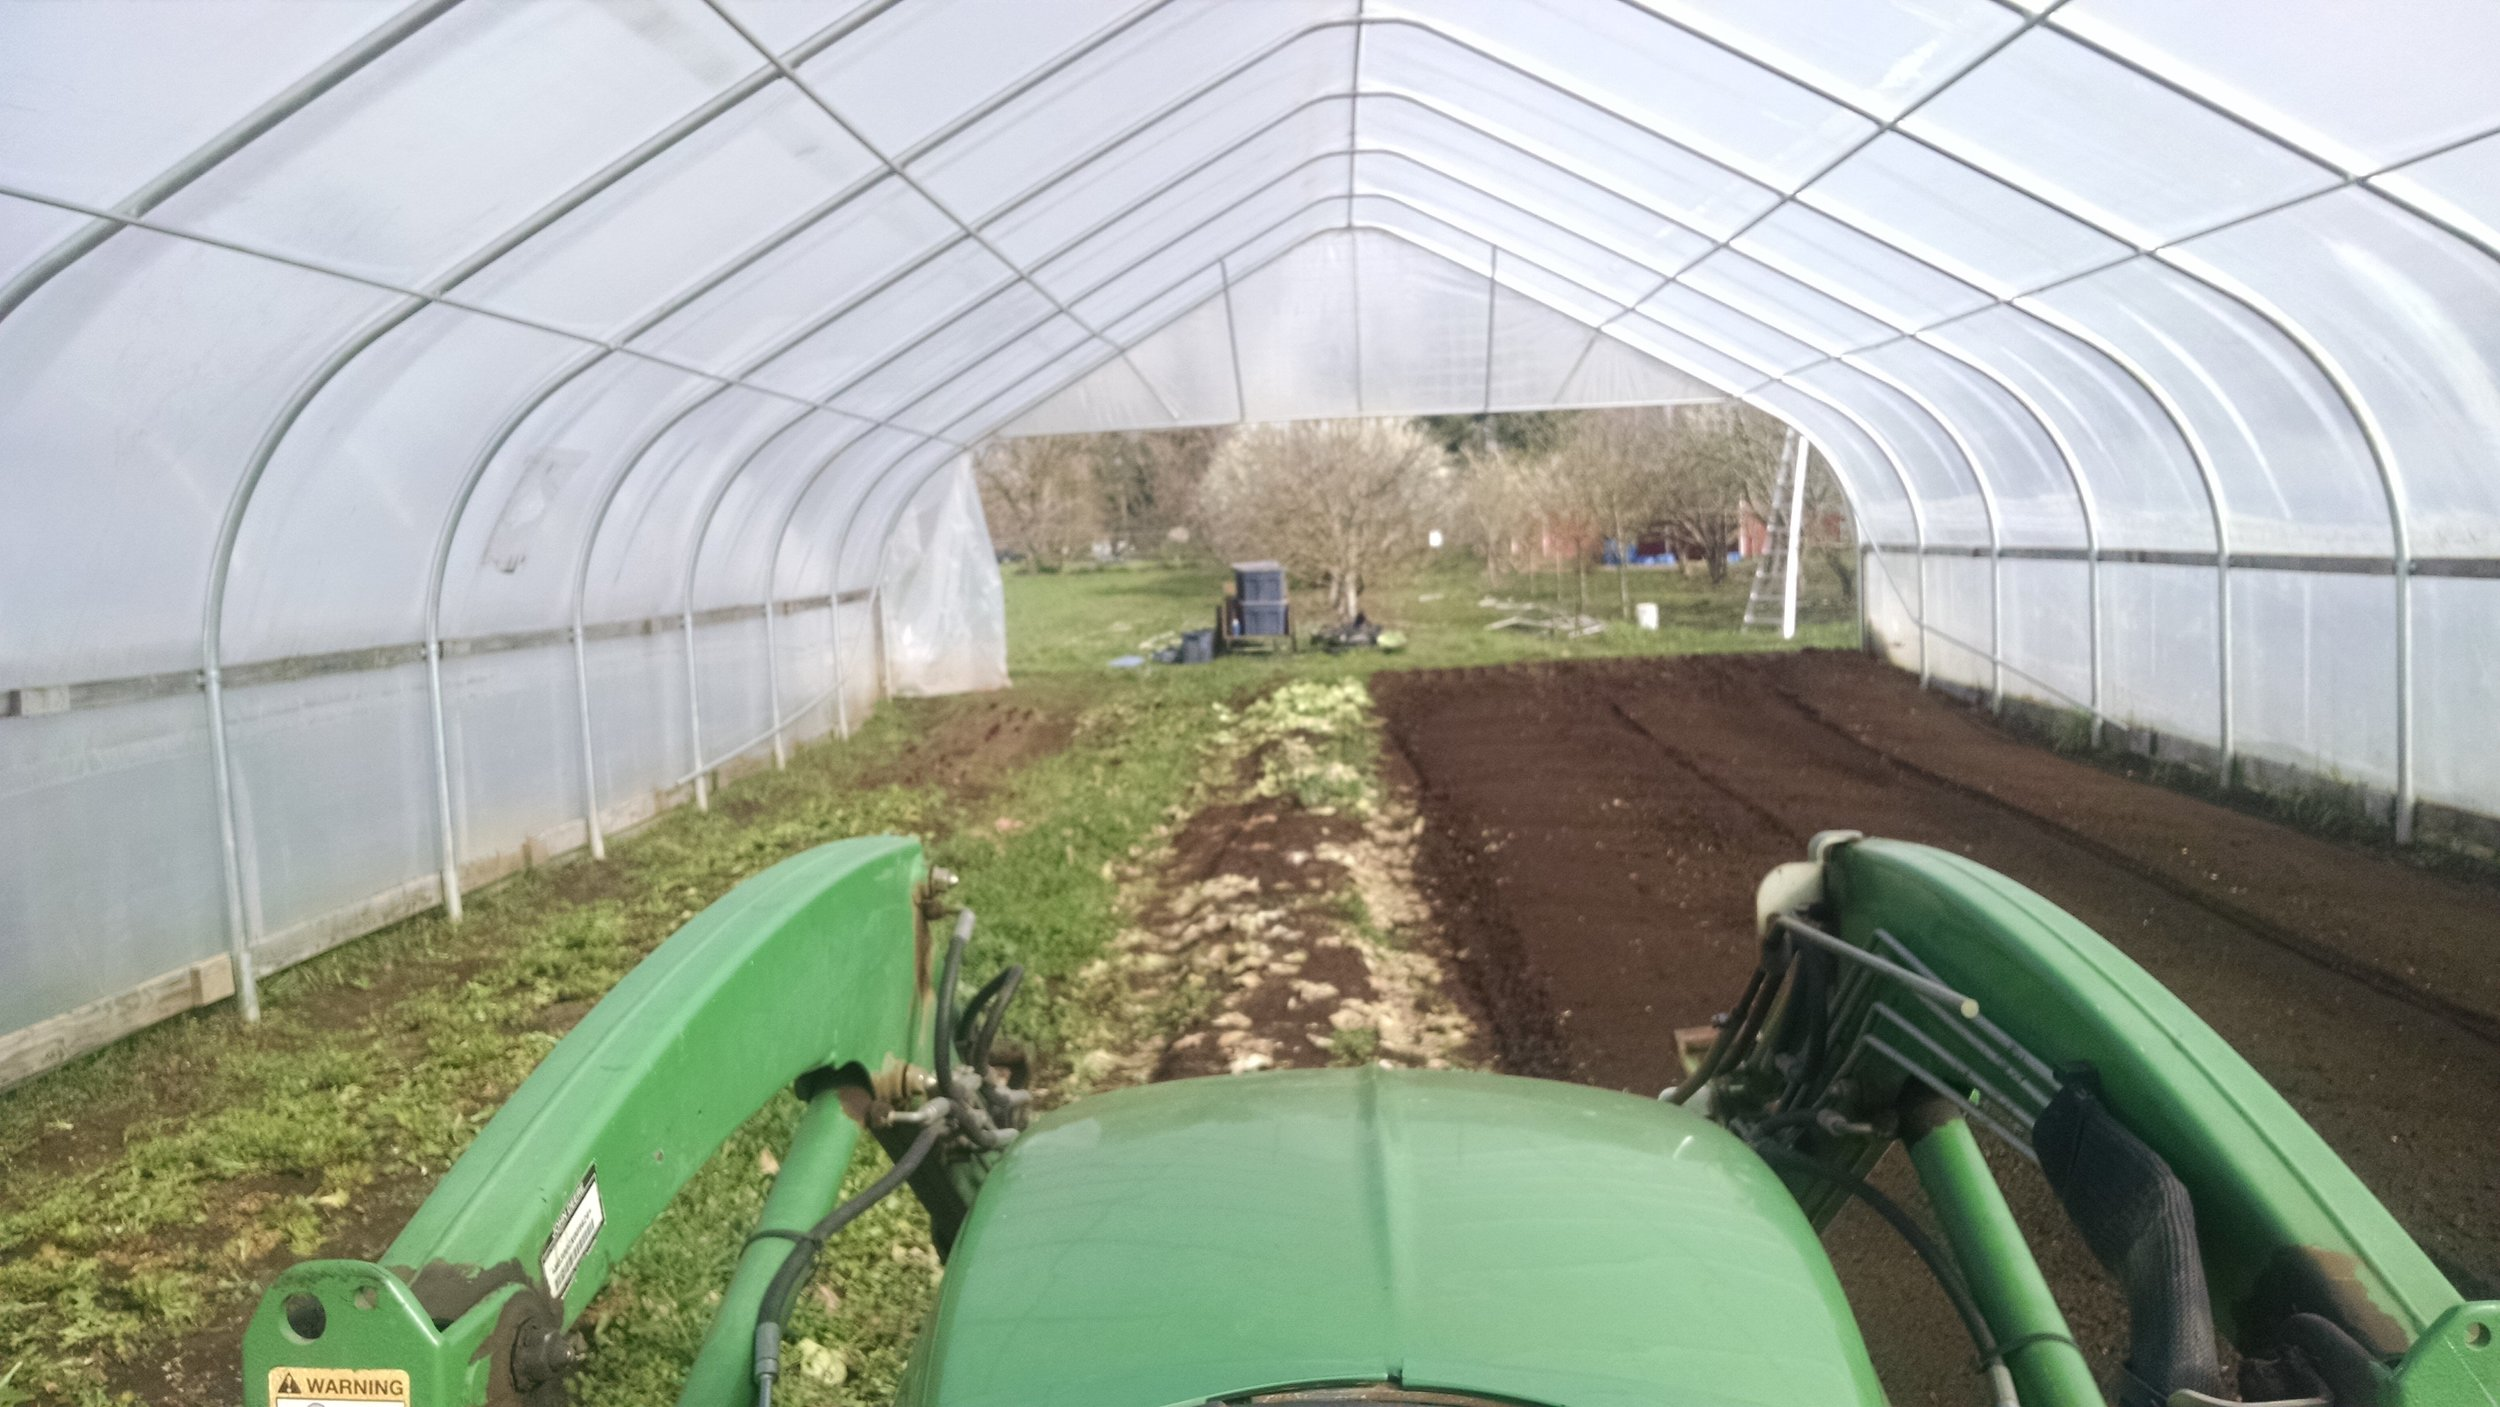 Making chocolate cake, aka tilling greenhouse beds